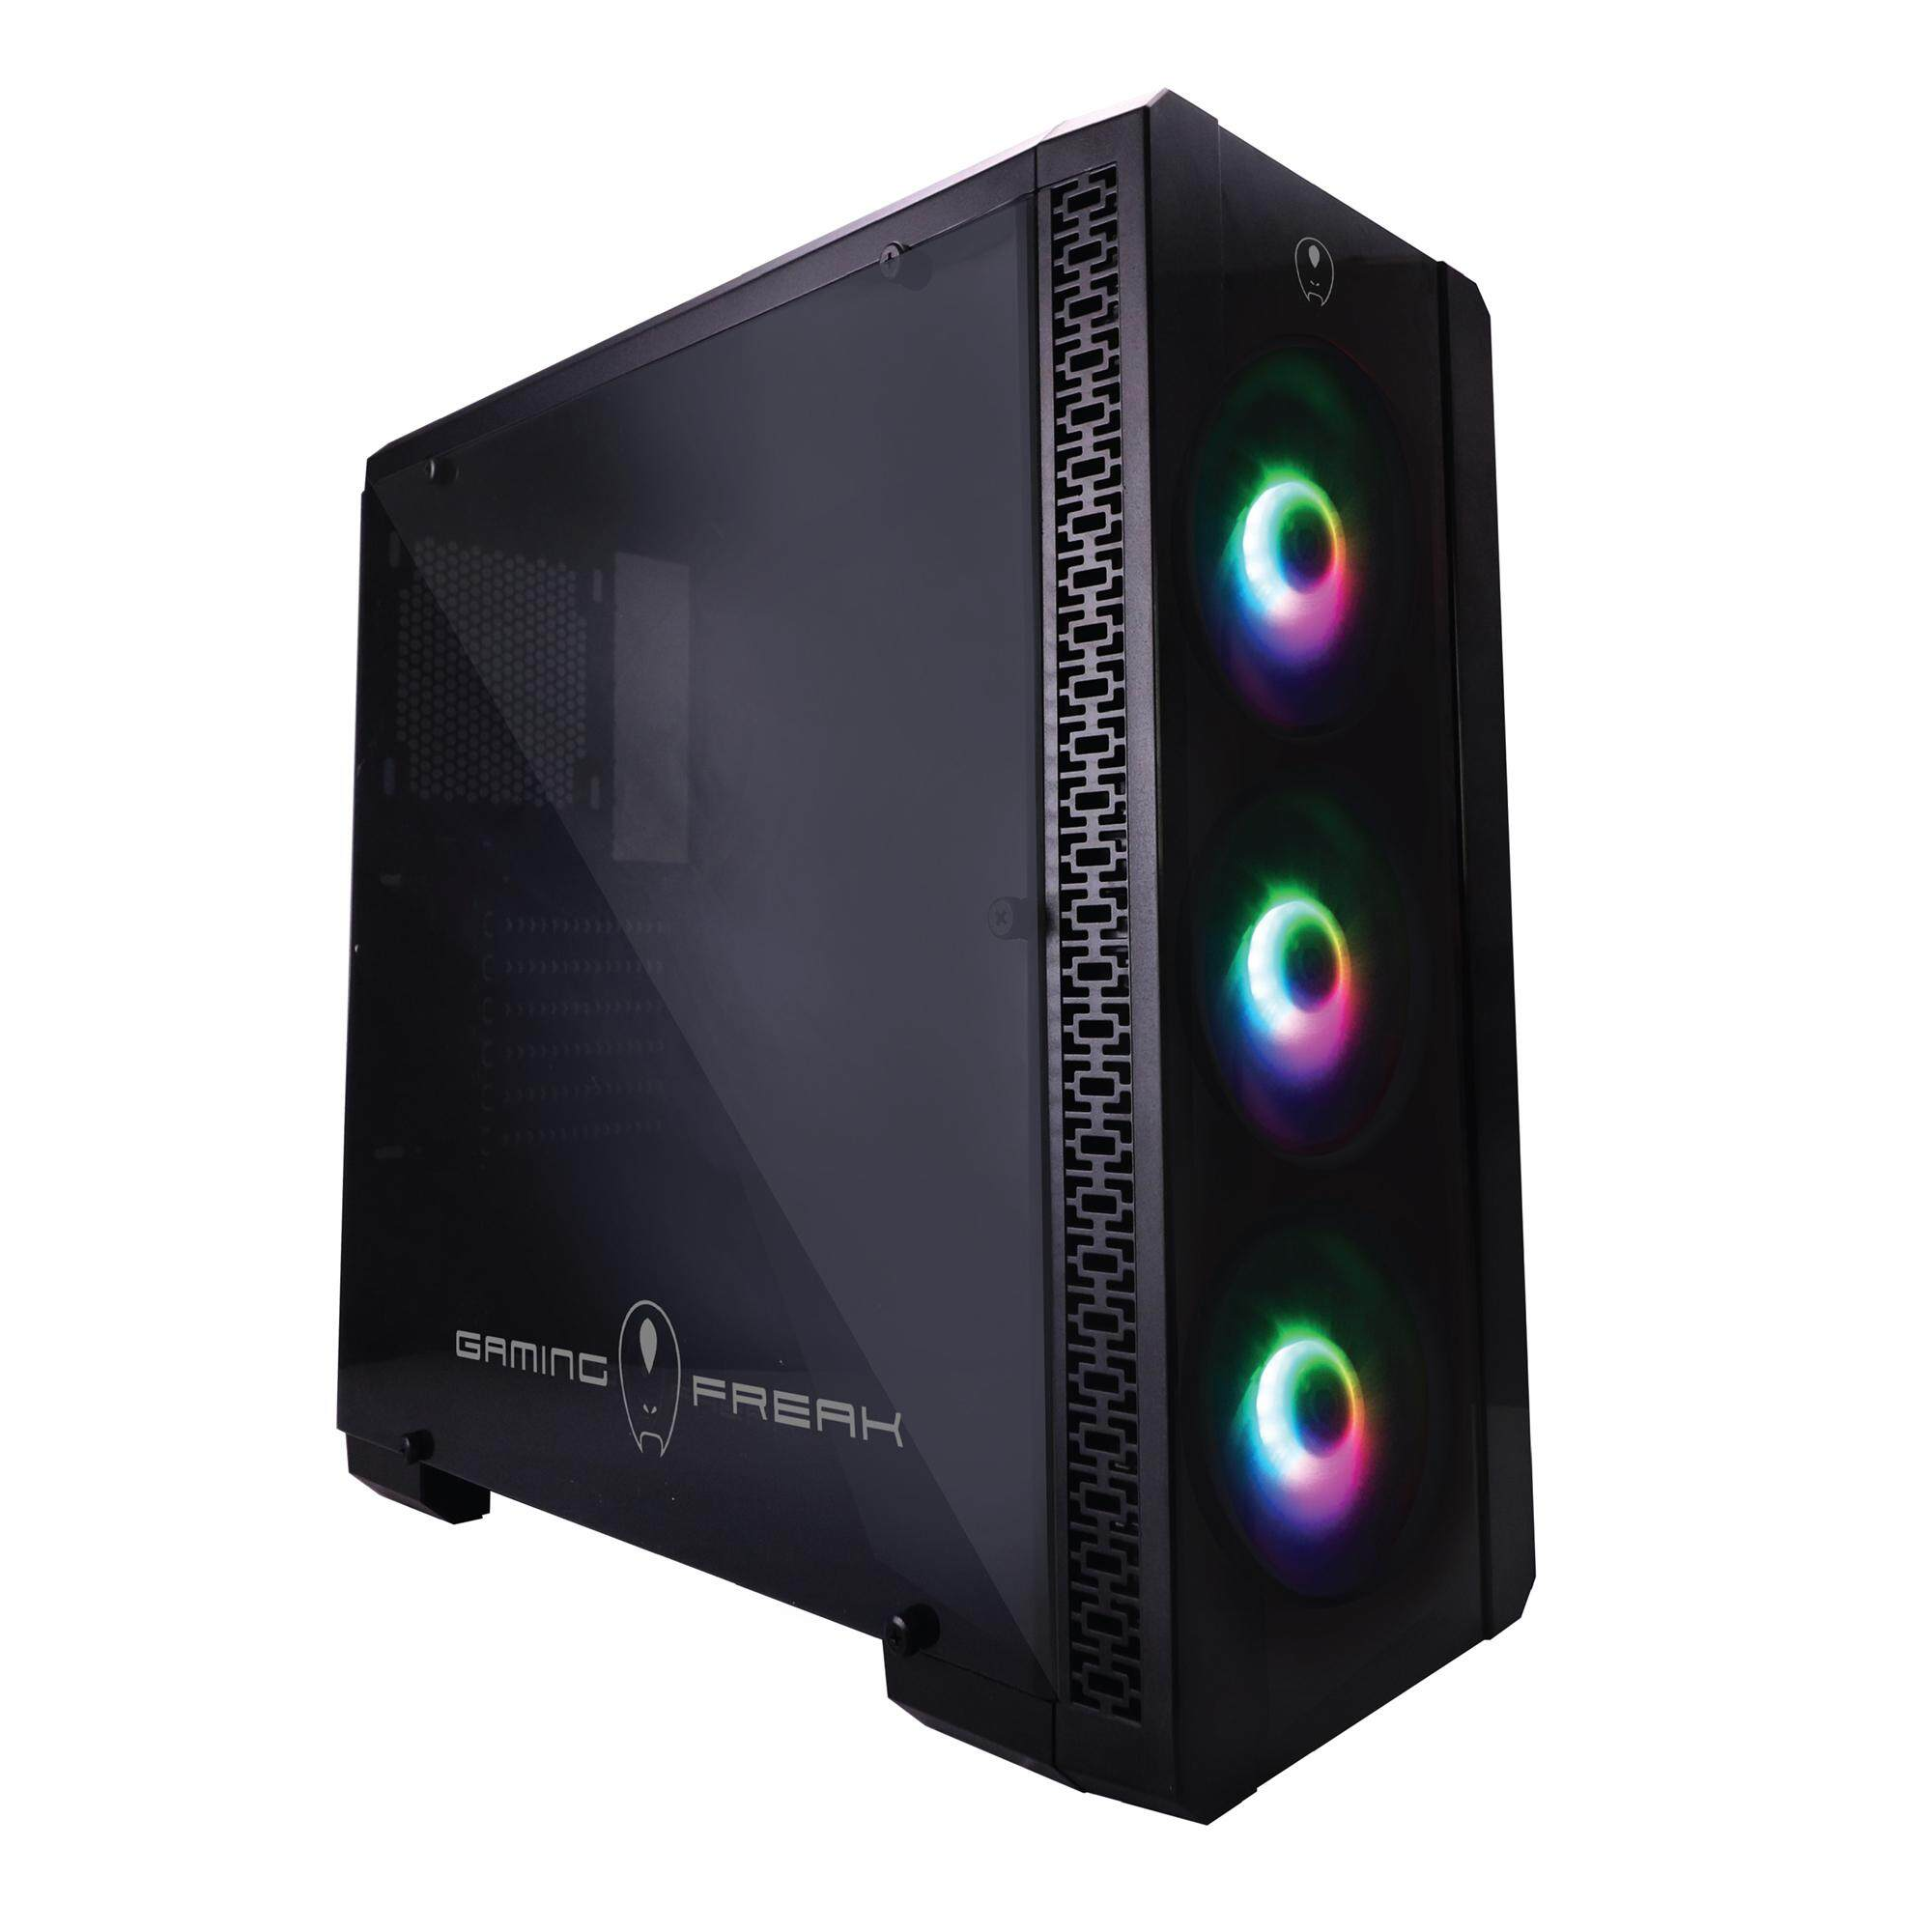 AVF GAMING FREAK NEW 50S-NEO NOVA  Gaming Tower Chassis. (Model No.: GFG-50S) Malaysia